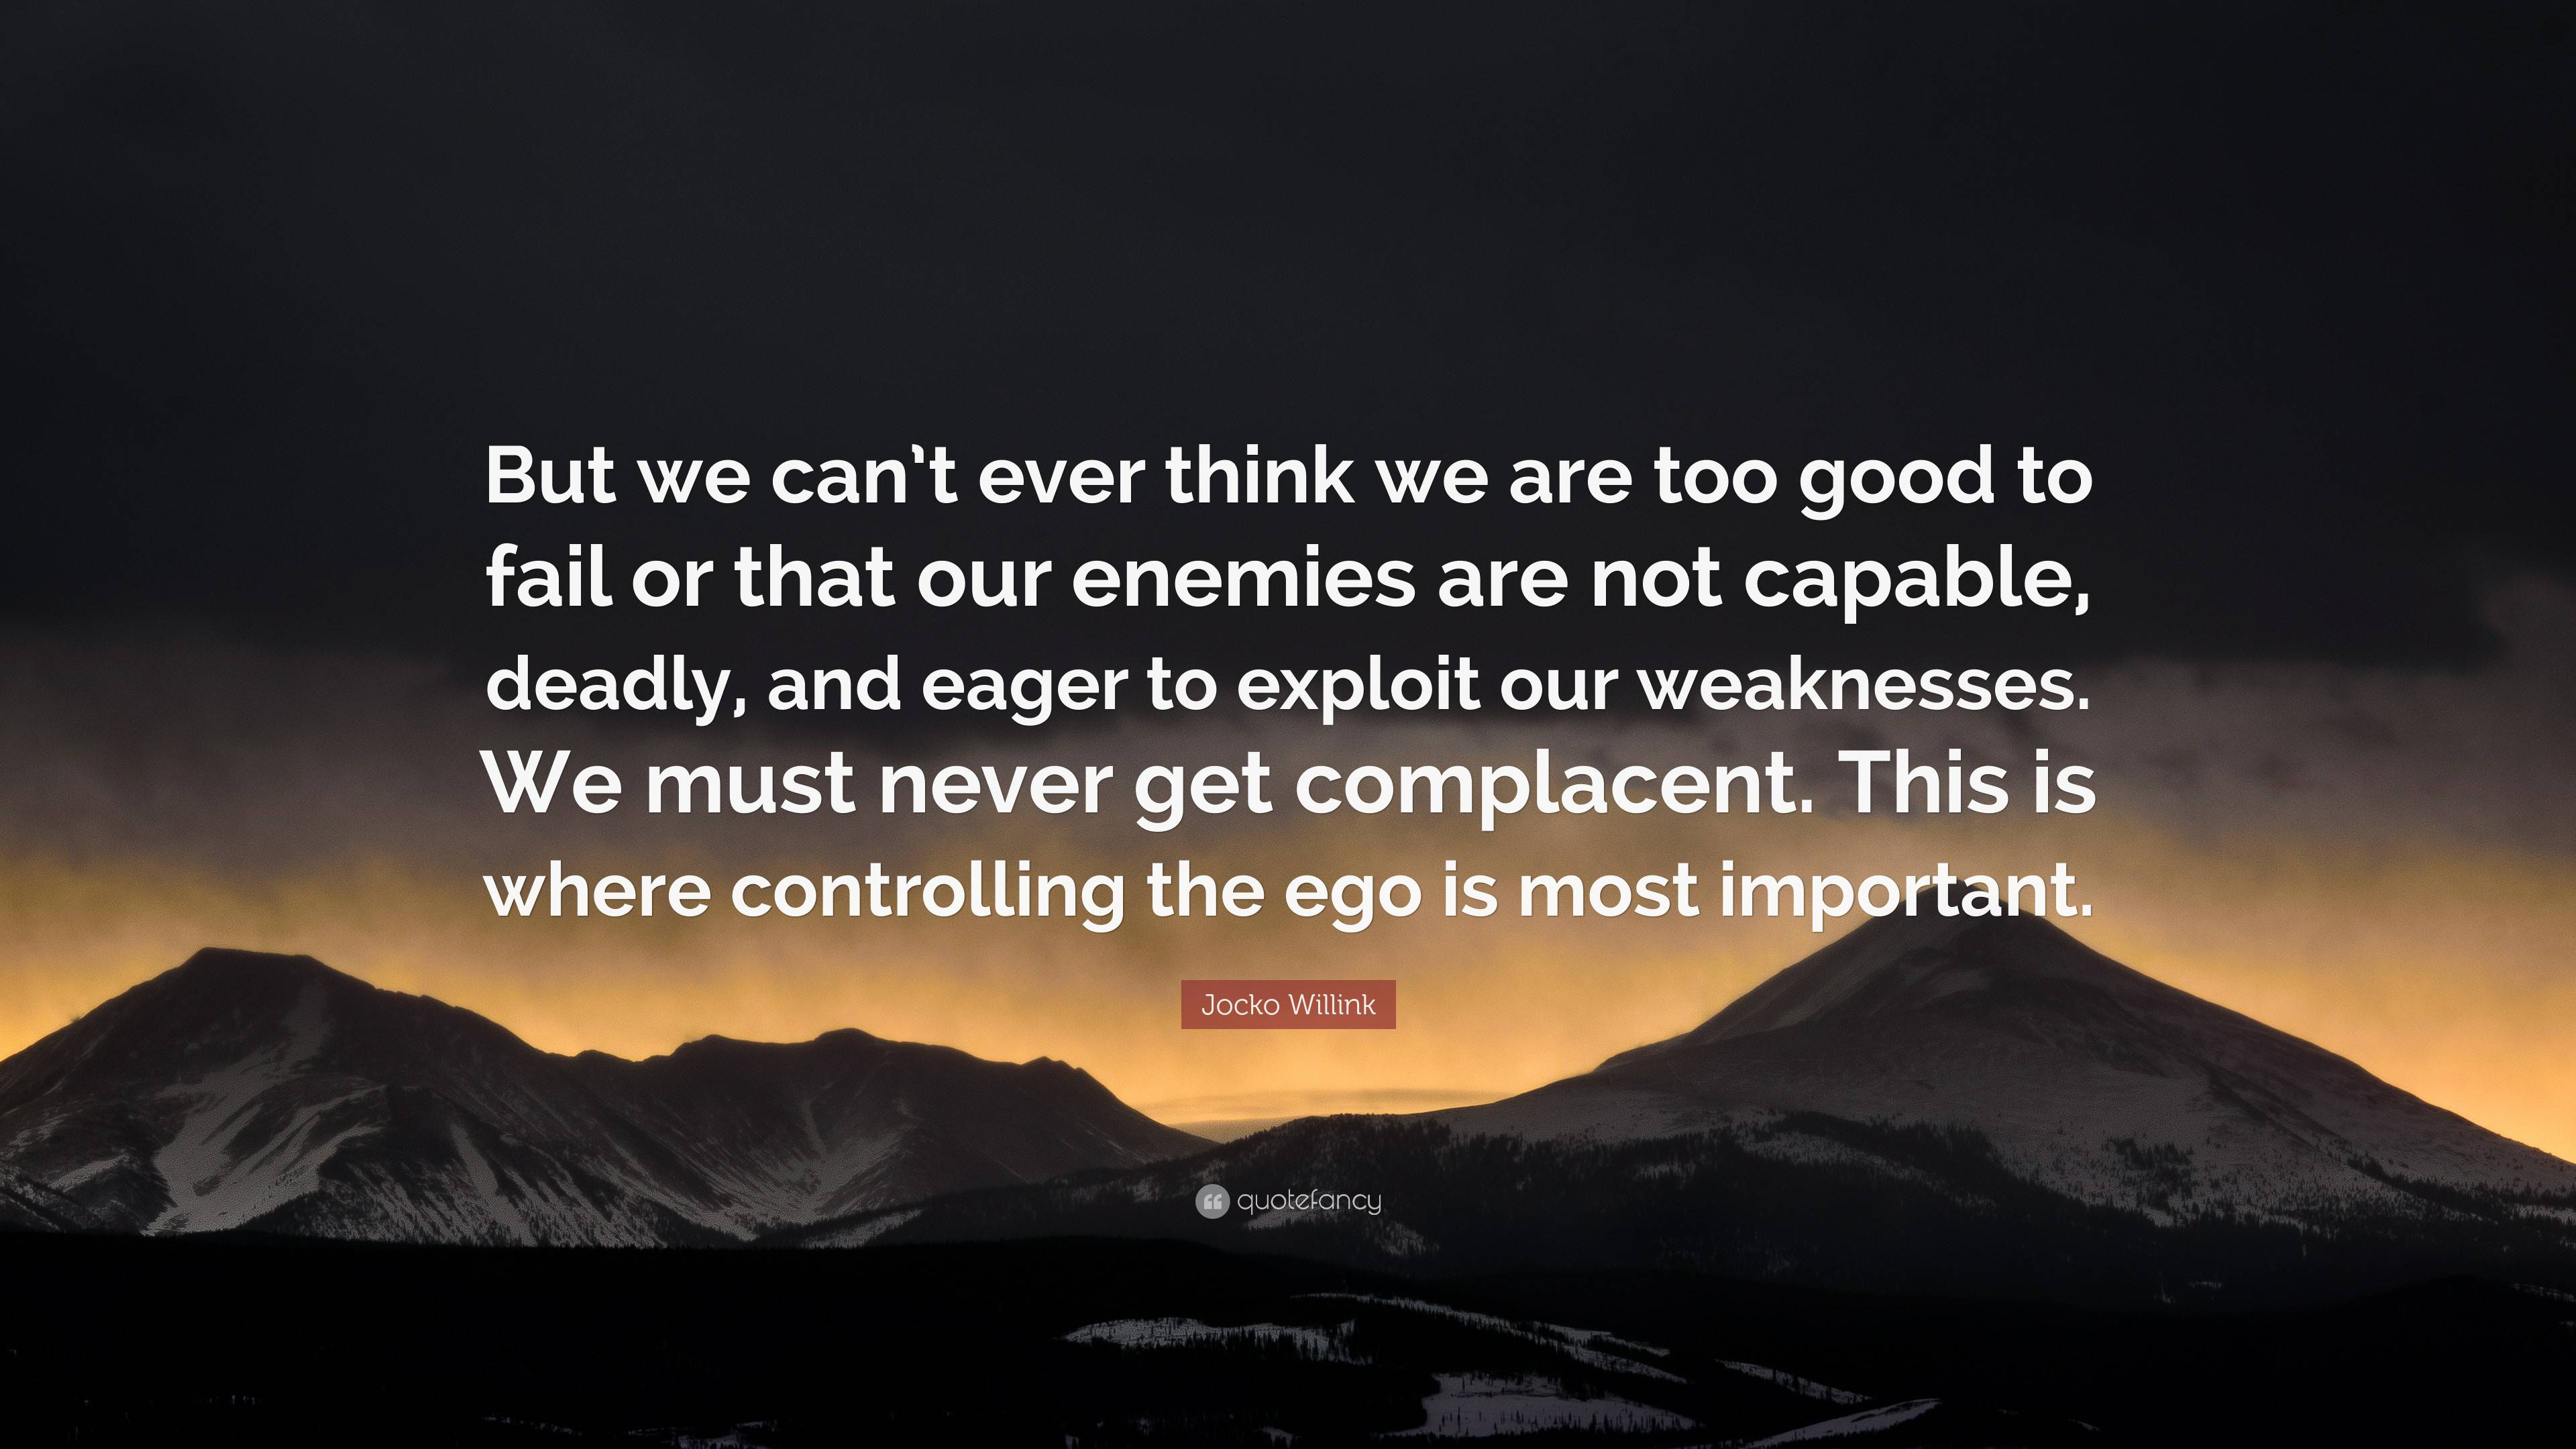 jocko willink quote but we can t ever